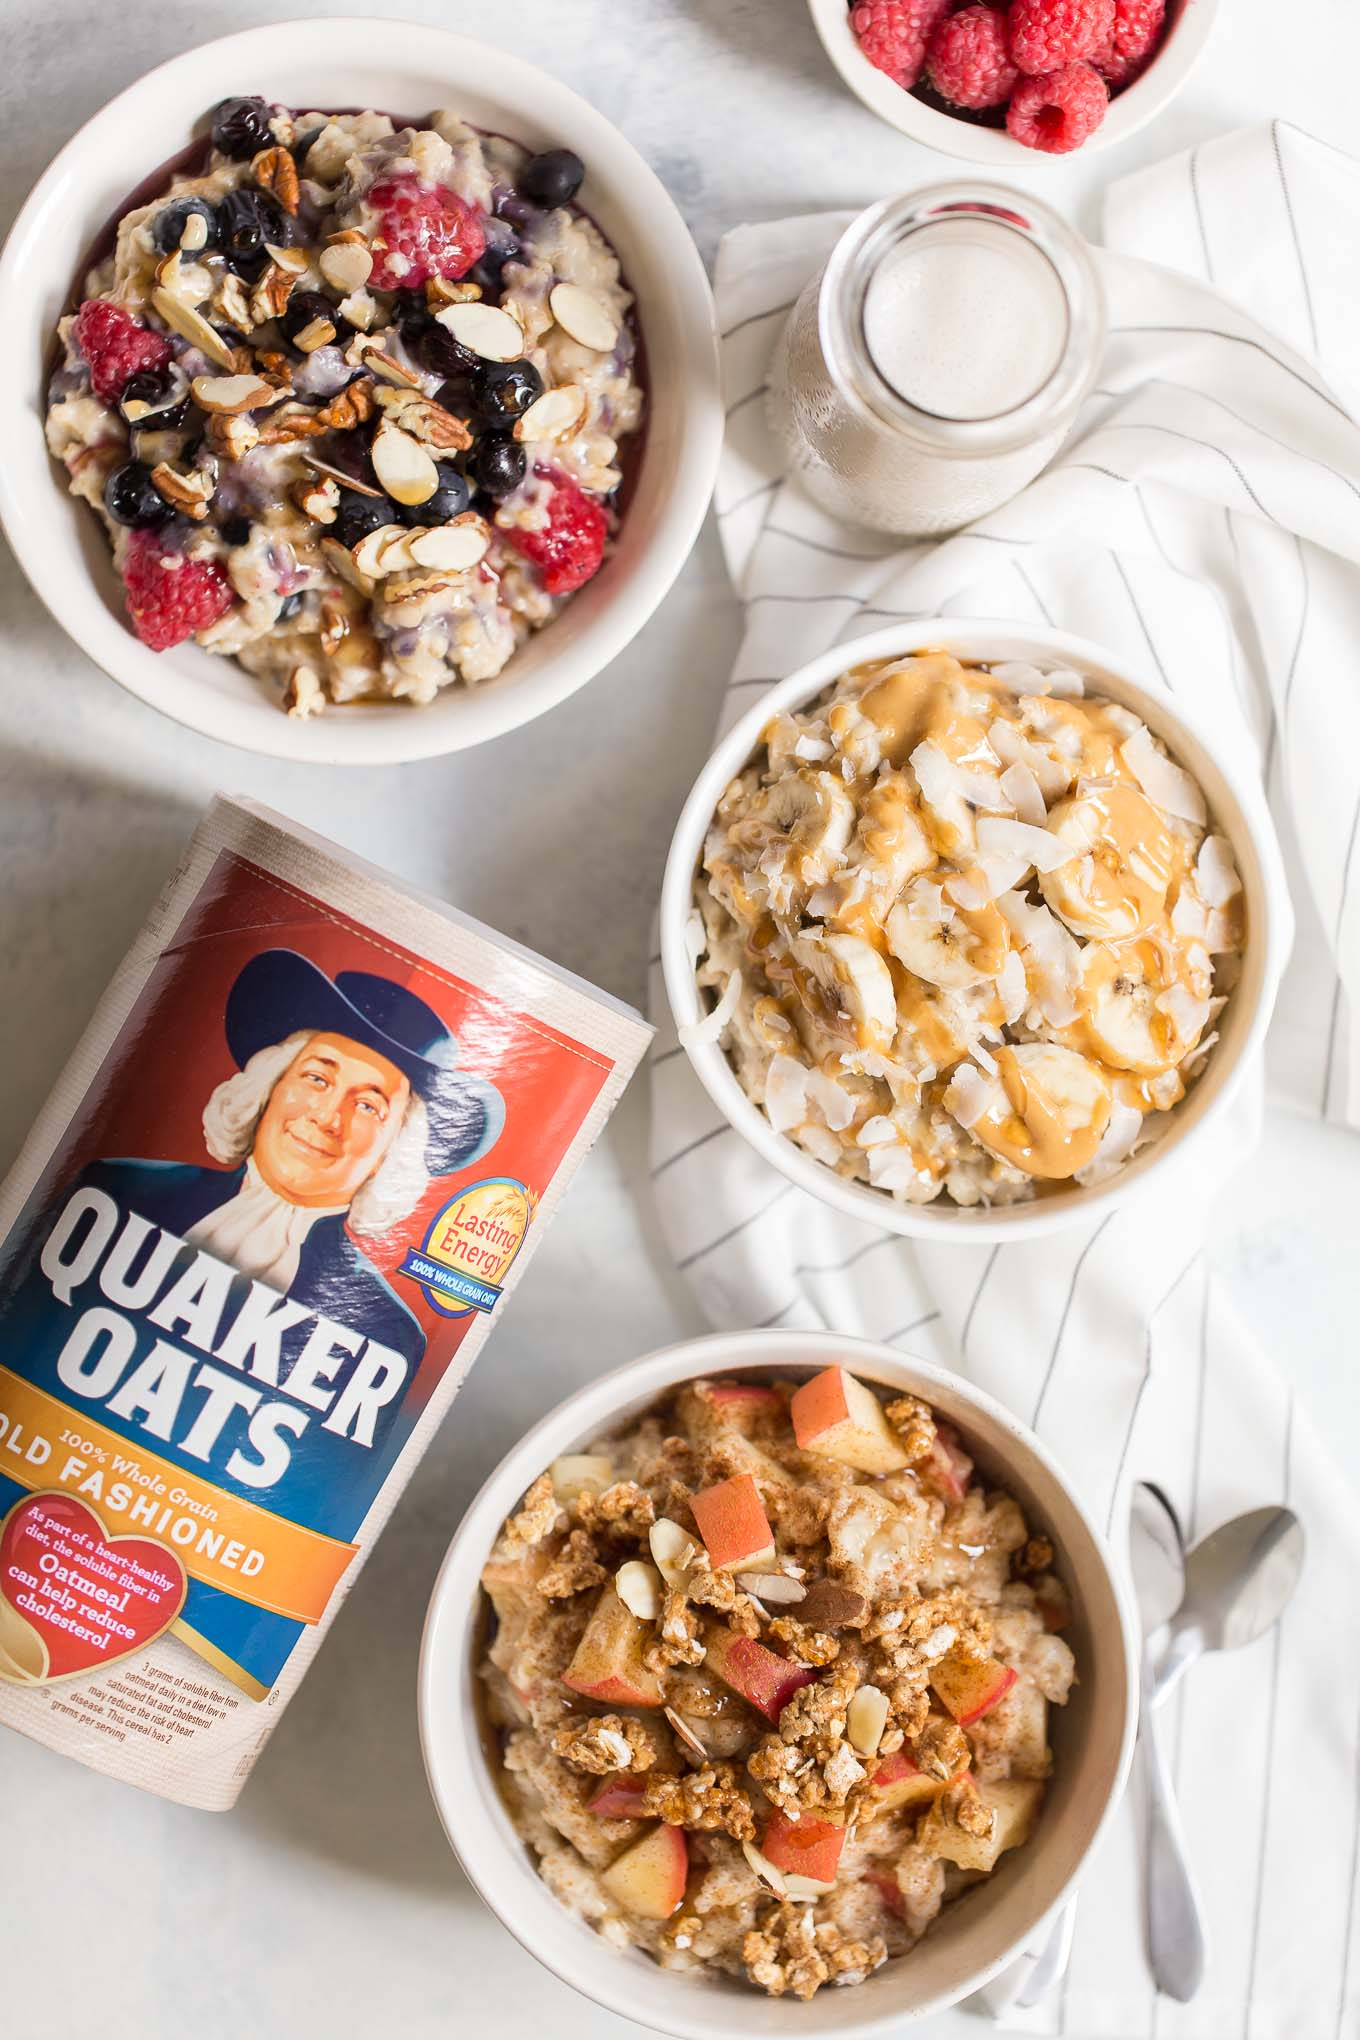 Slow Cooker Oatmeal Recipe - Here's how to make slow cooker oatmeal with old fashioned oats and 3 delicious variations: apple crisp, peanut butter banana, berry crunch